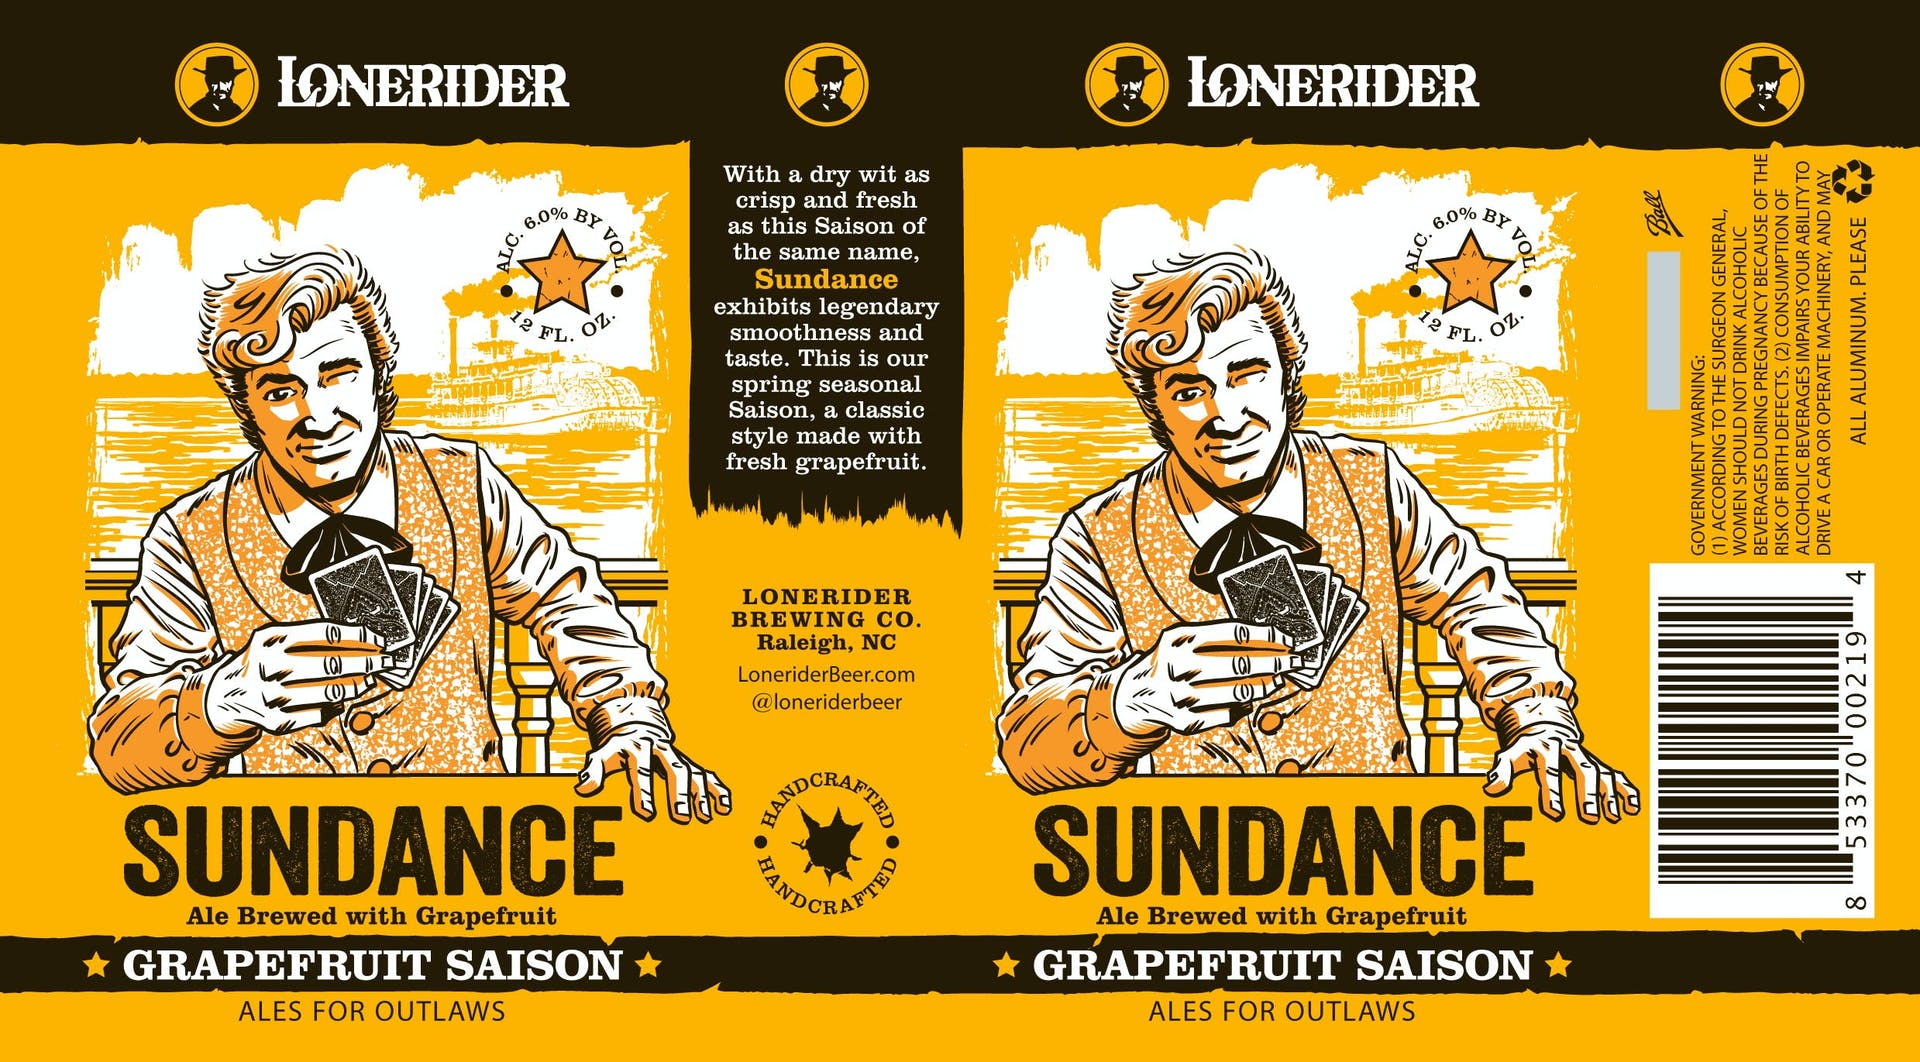 Sundance_Saison12oz_graphics-active